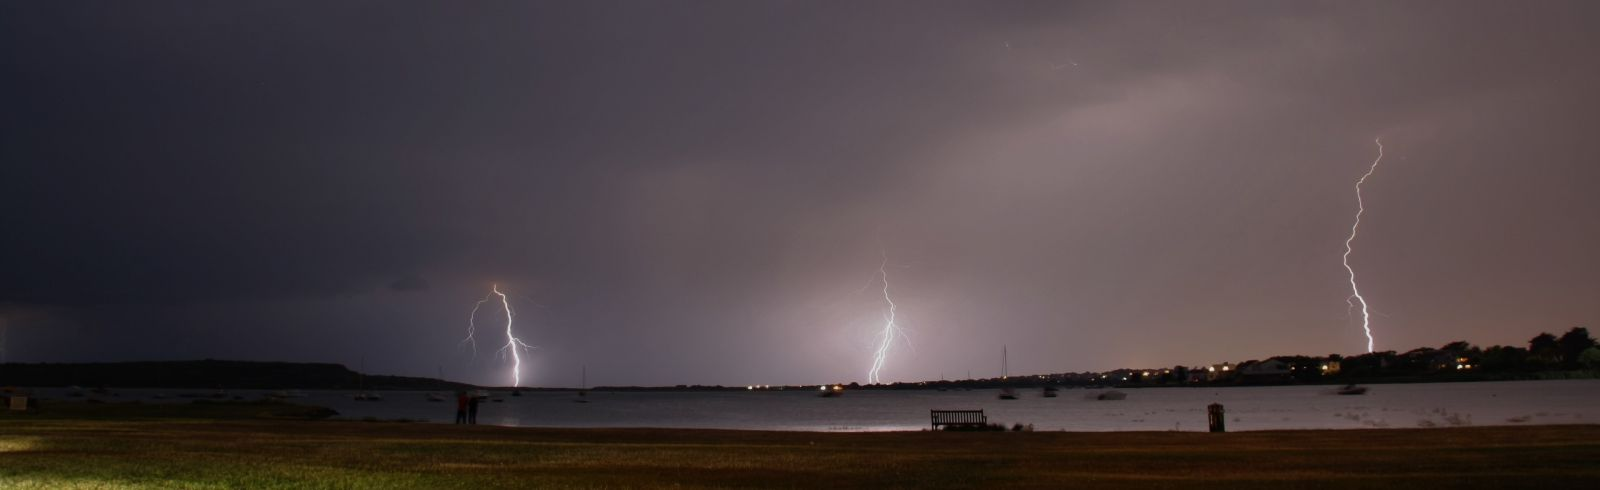 Mudeford Quay Lightning 03/07/2015